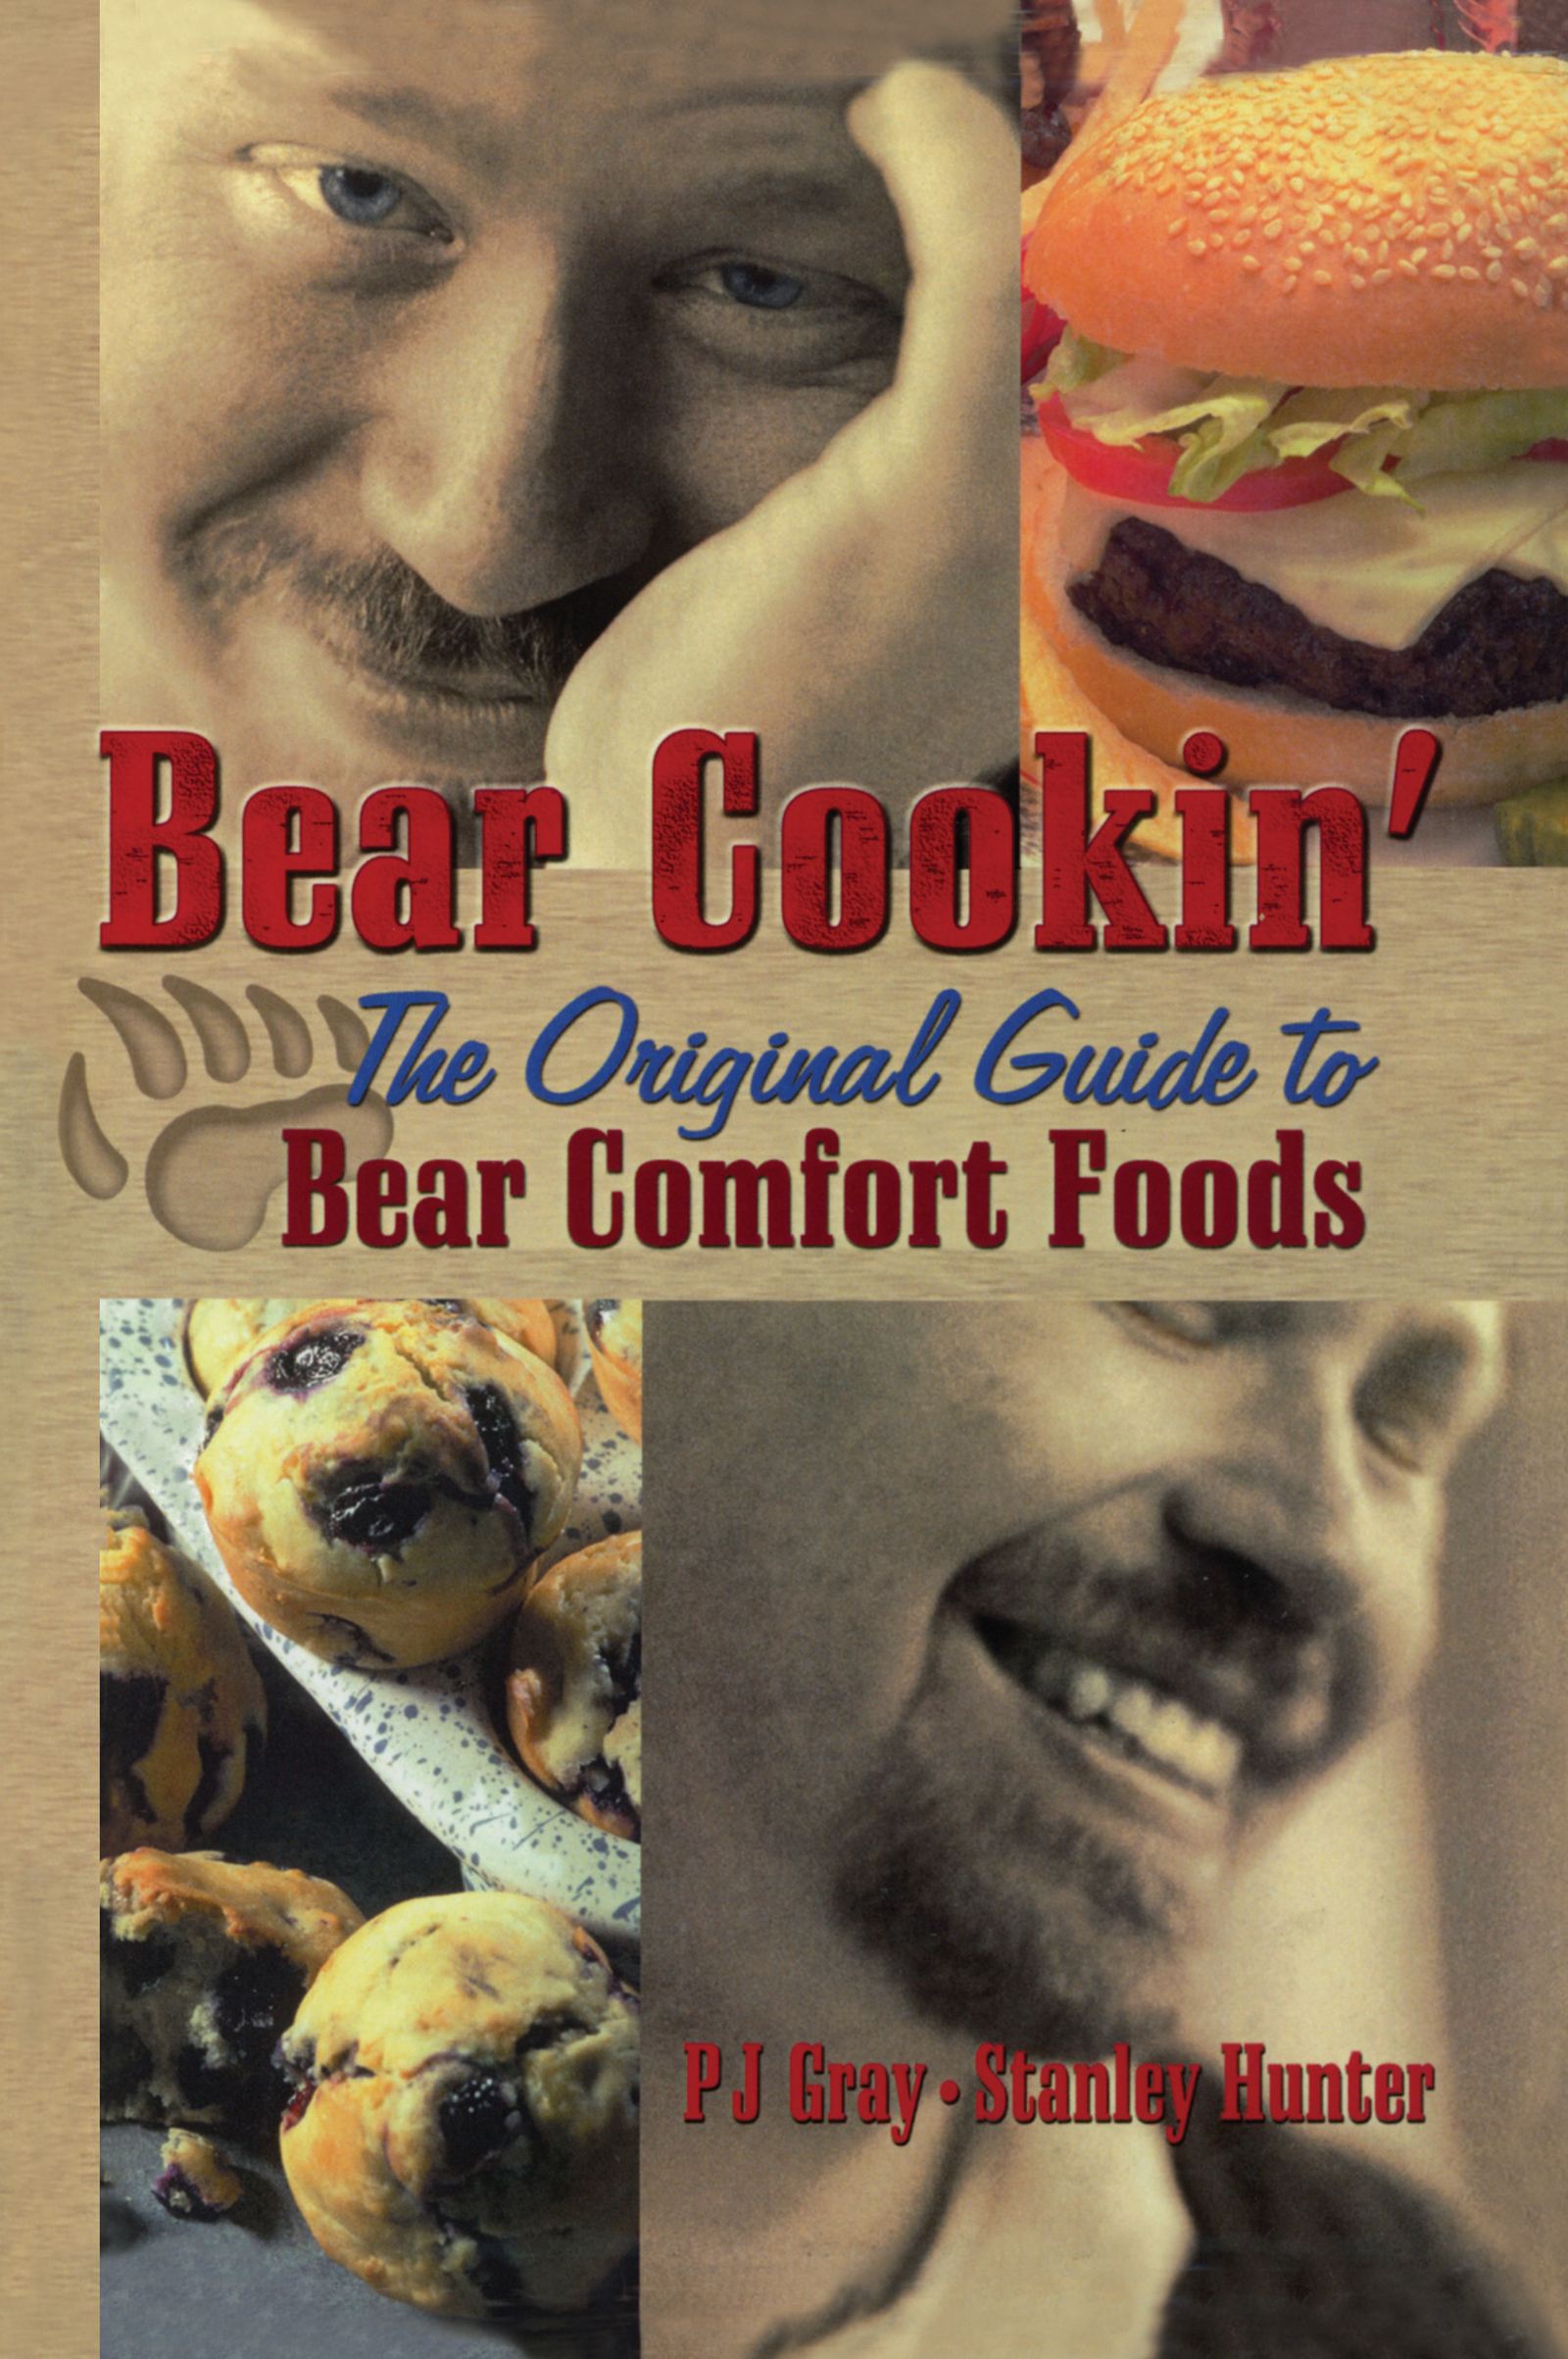 Bear Cookin': The Original Guide to Bear Comfort Foods book cover